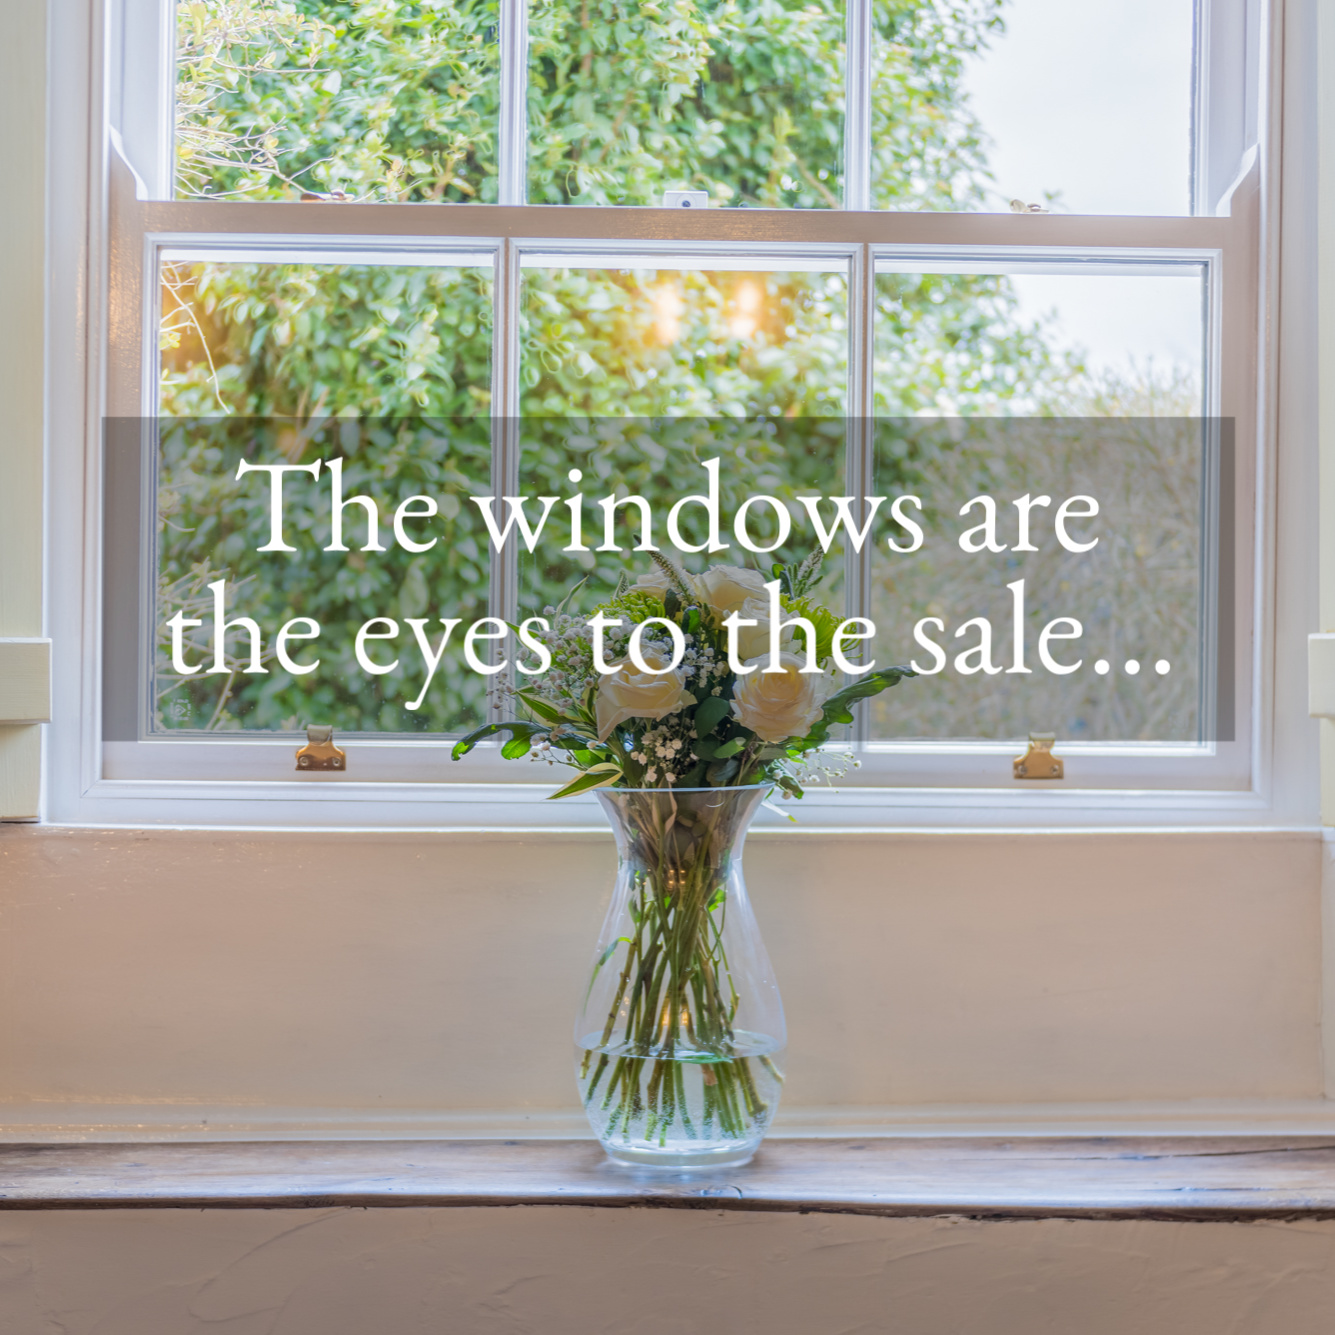 tg3-the-windows-are-the-eyes-to-the-sale